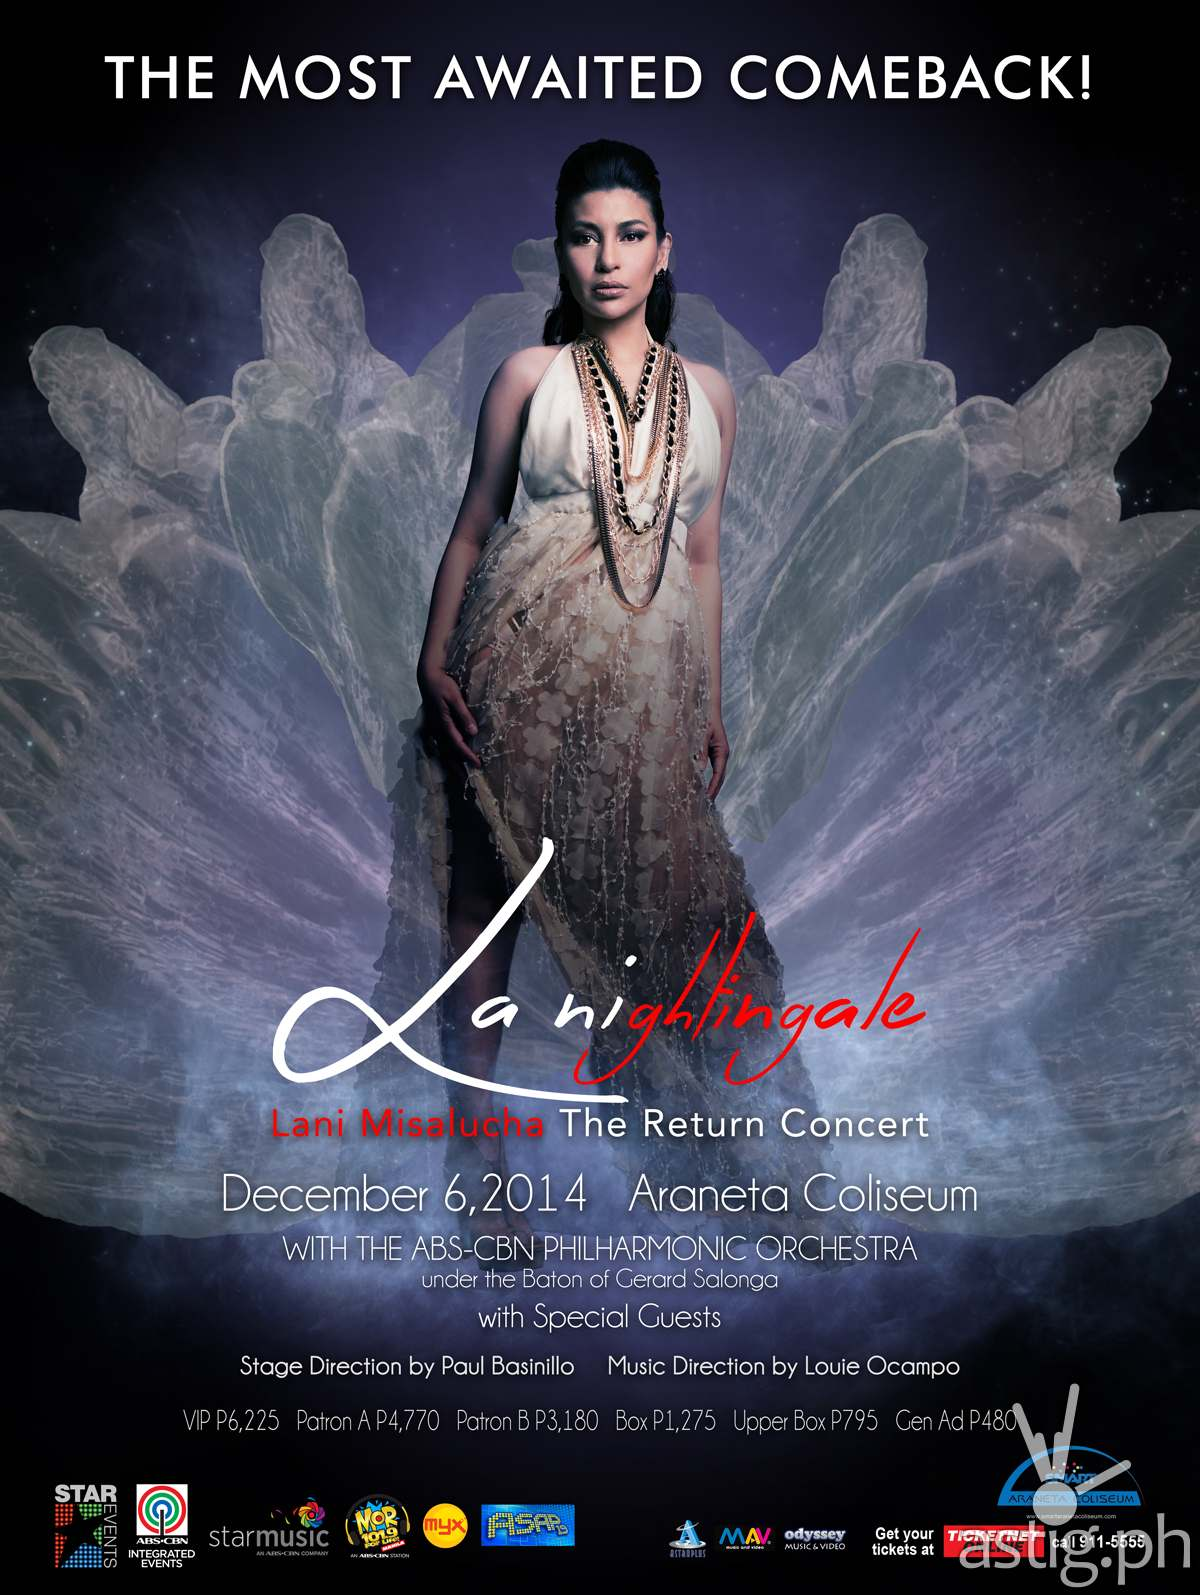 LA NIGHTINGALE: Lani Misalucha The Return Concert